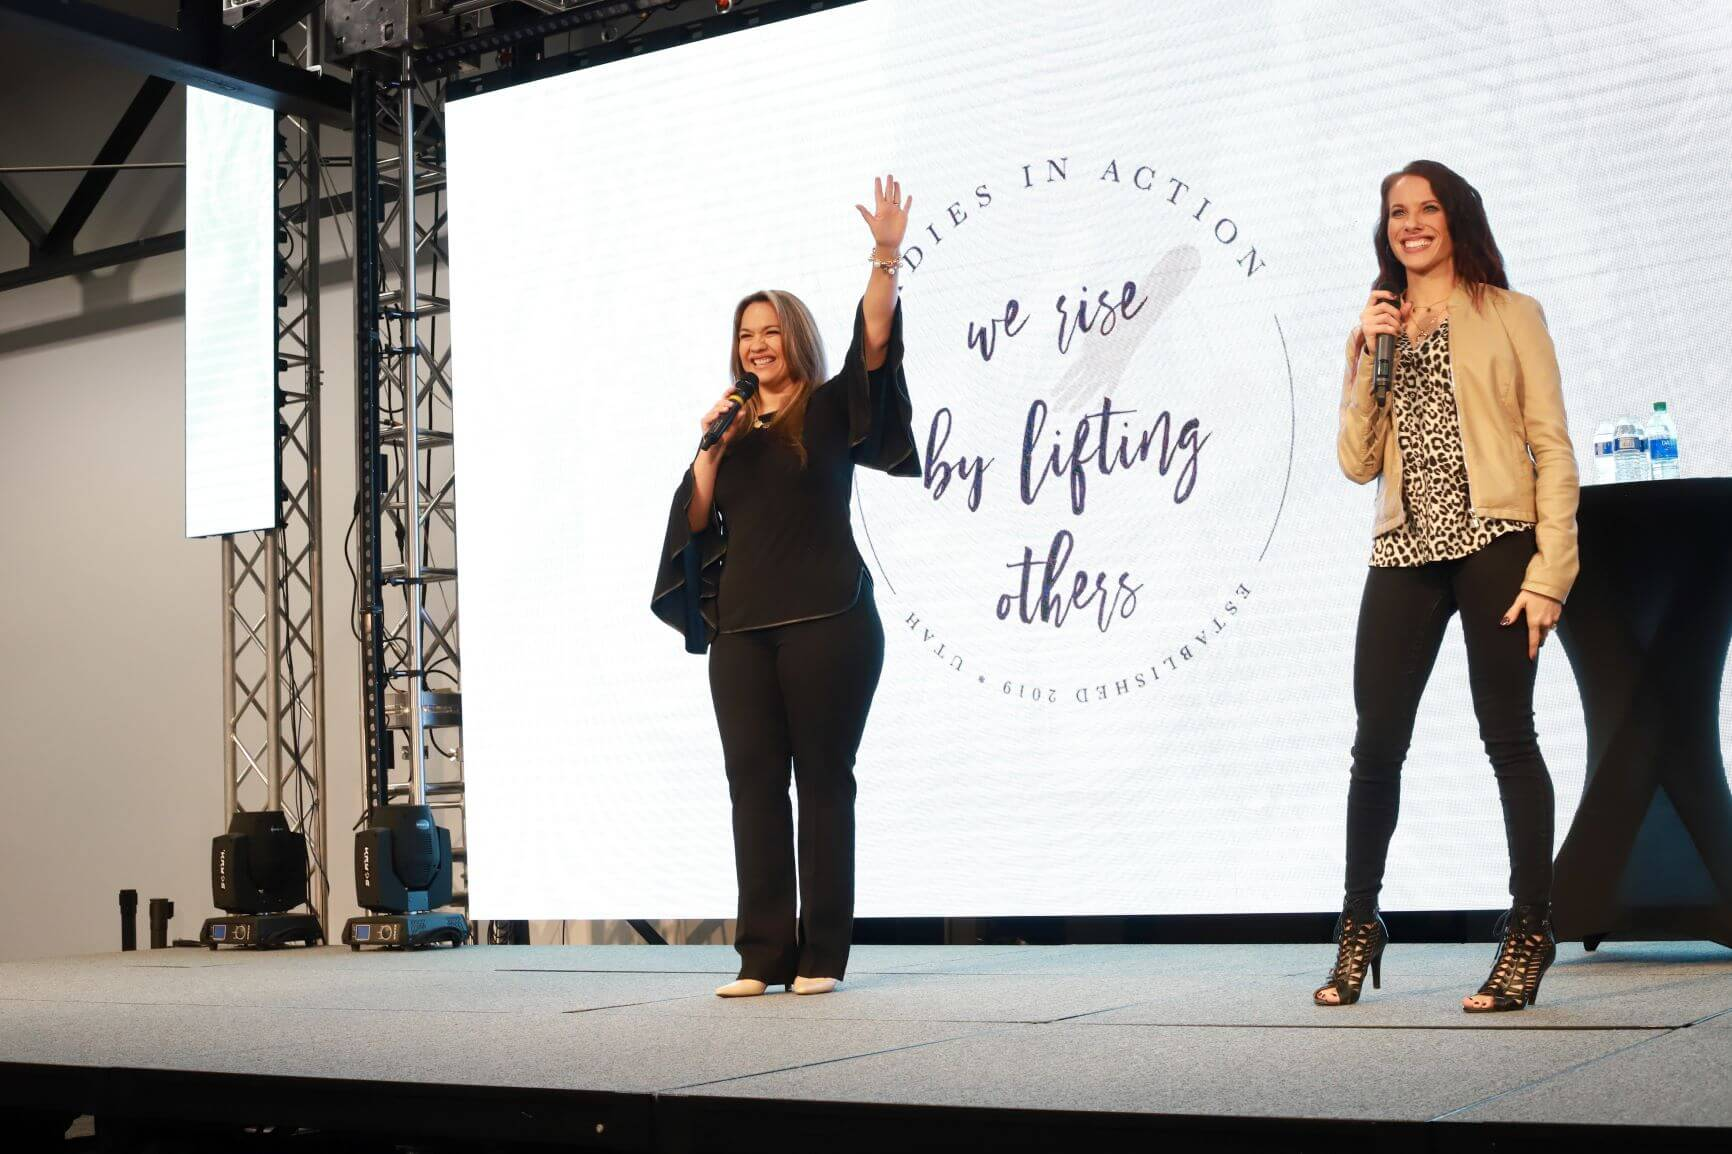 Photo of Ladies in Action organizers Dora Lopez and Diana Groesbeck, in front of a giant screen showcasing the Ladies in Action logo.